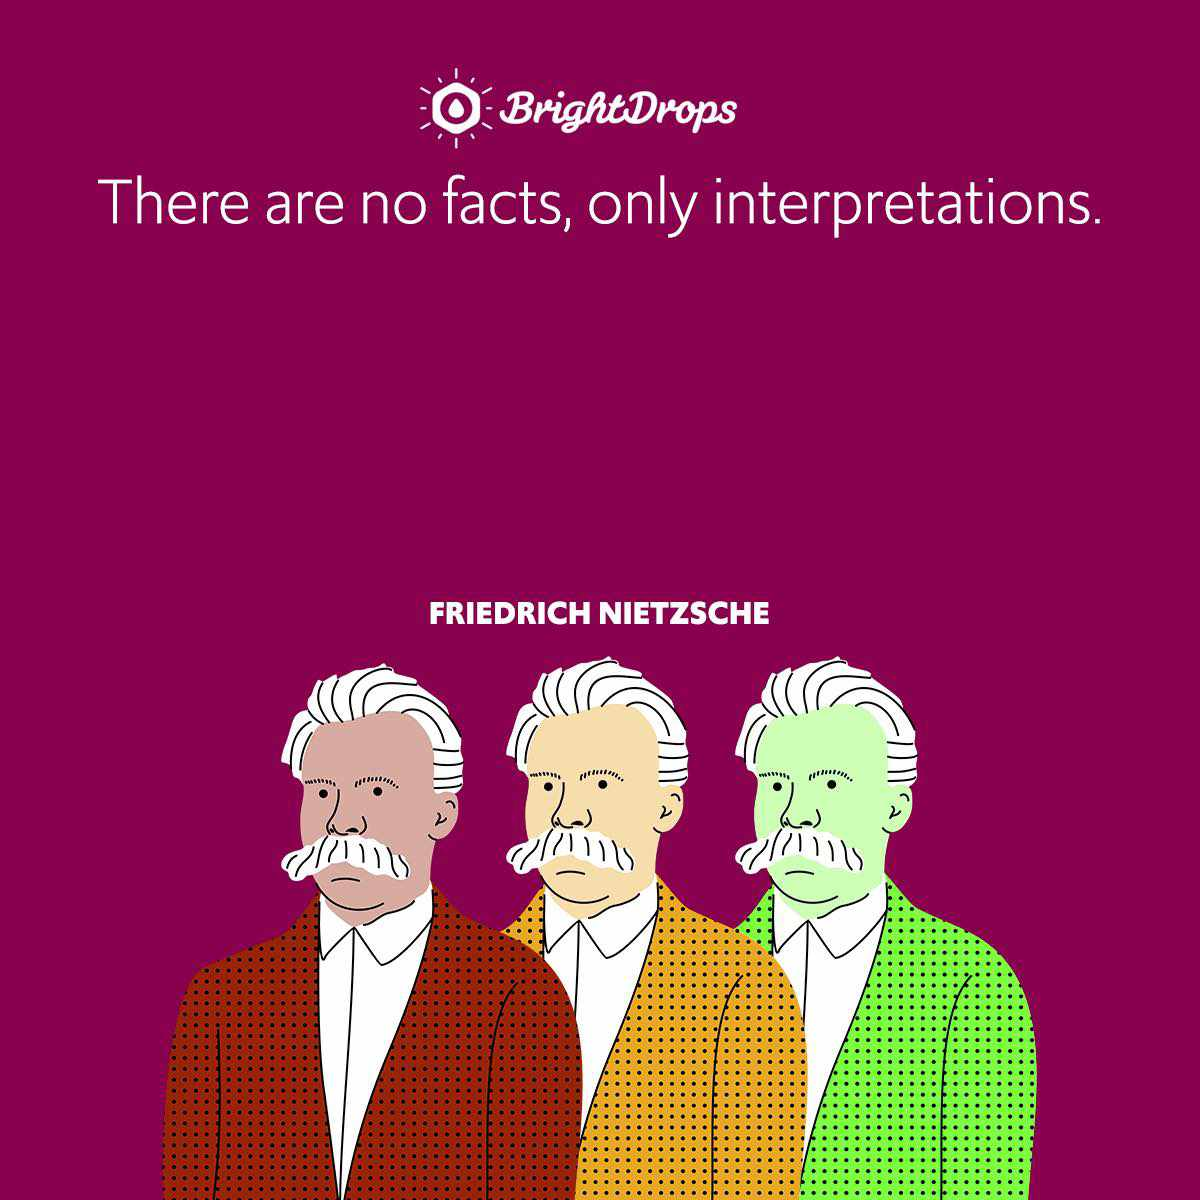 There are no facts, only interpretations.